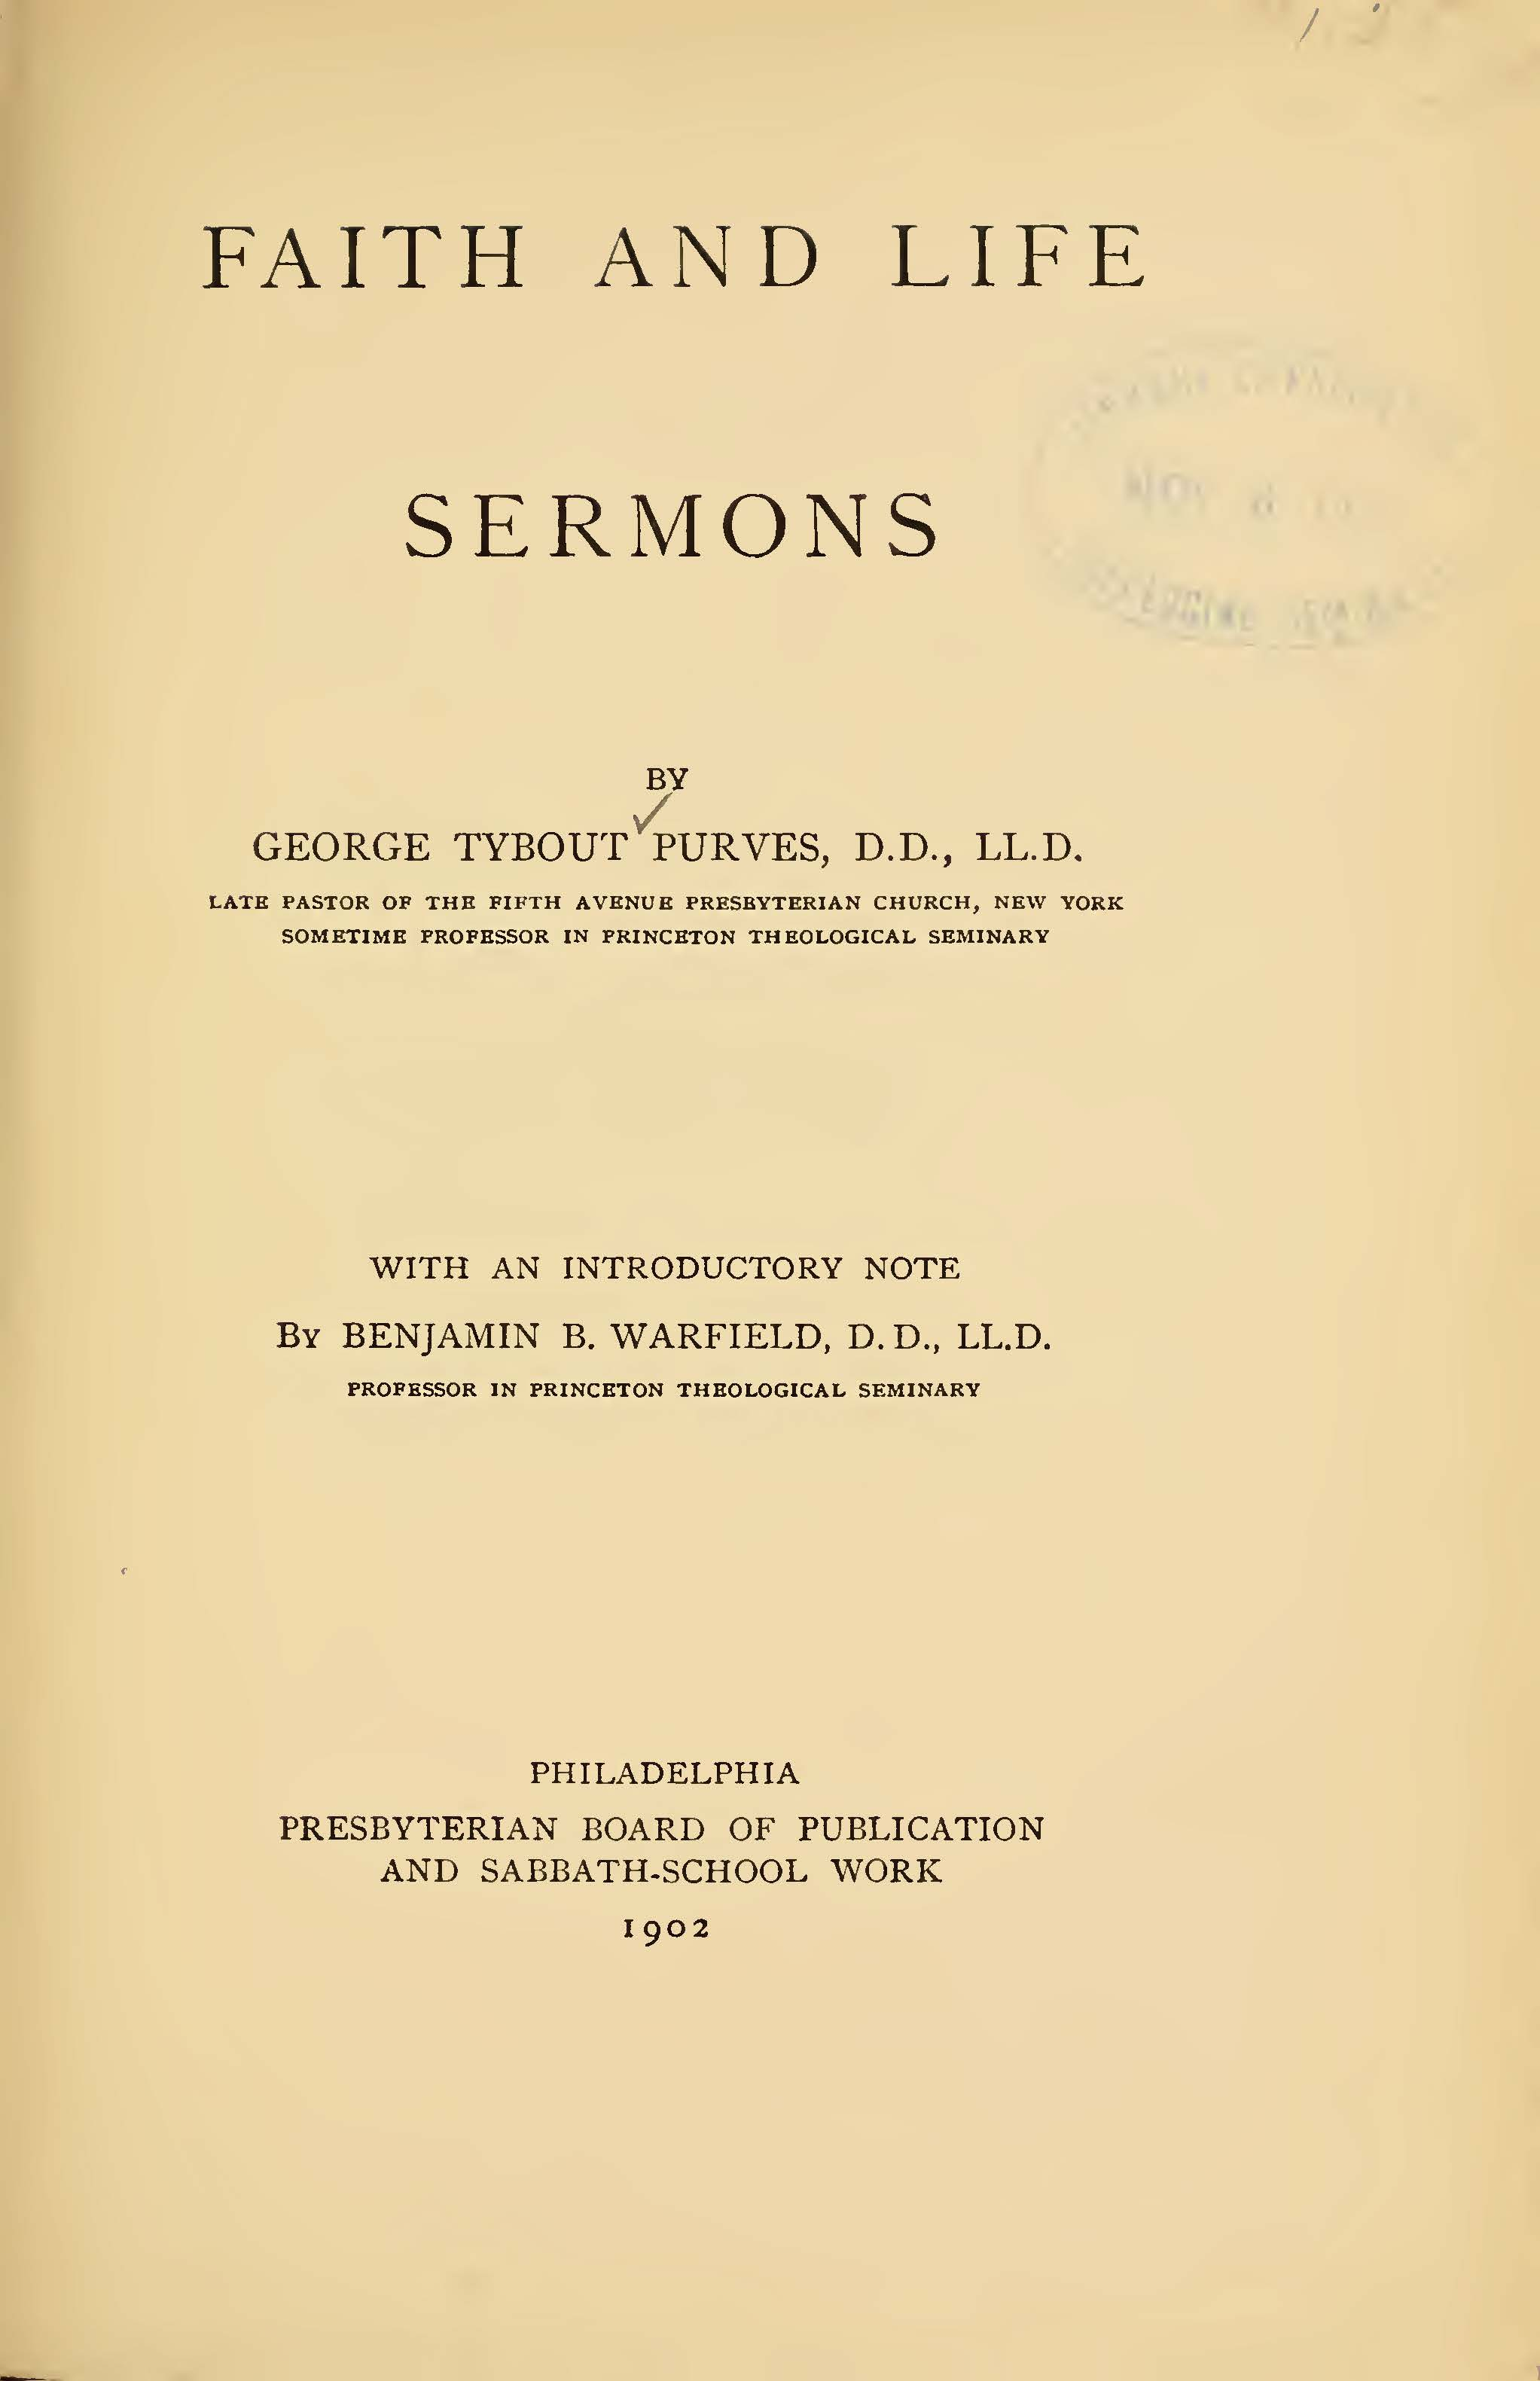 Purves, George Tybout, Faith and Life Title Page.jpg